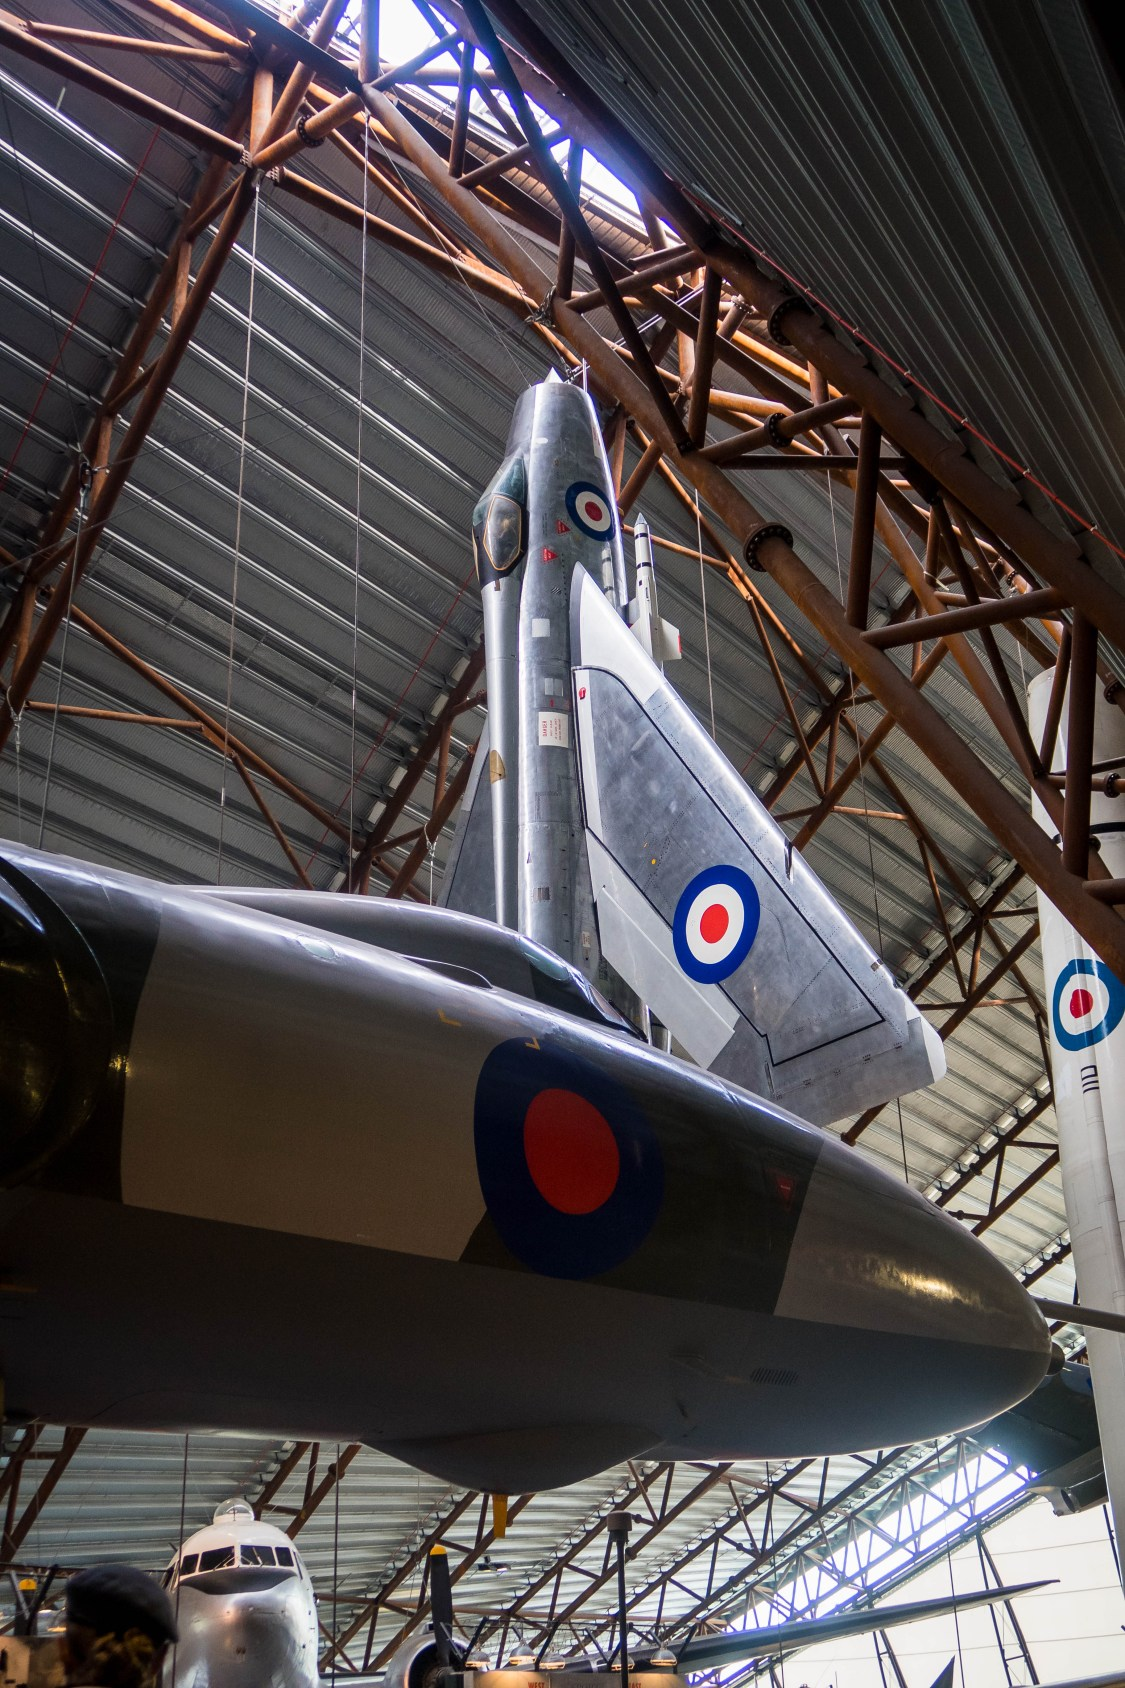 the exhibition at RAF Cosford